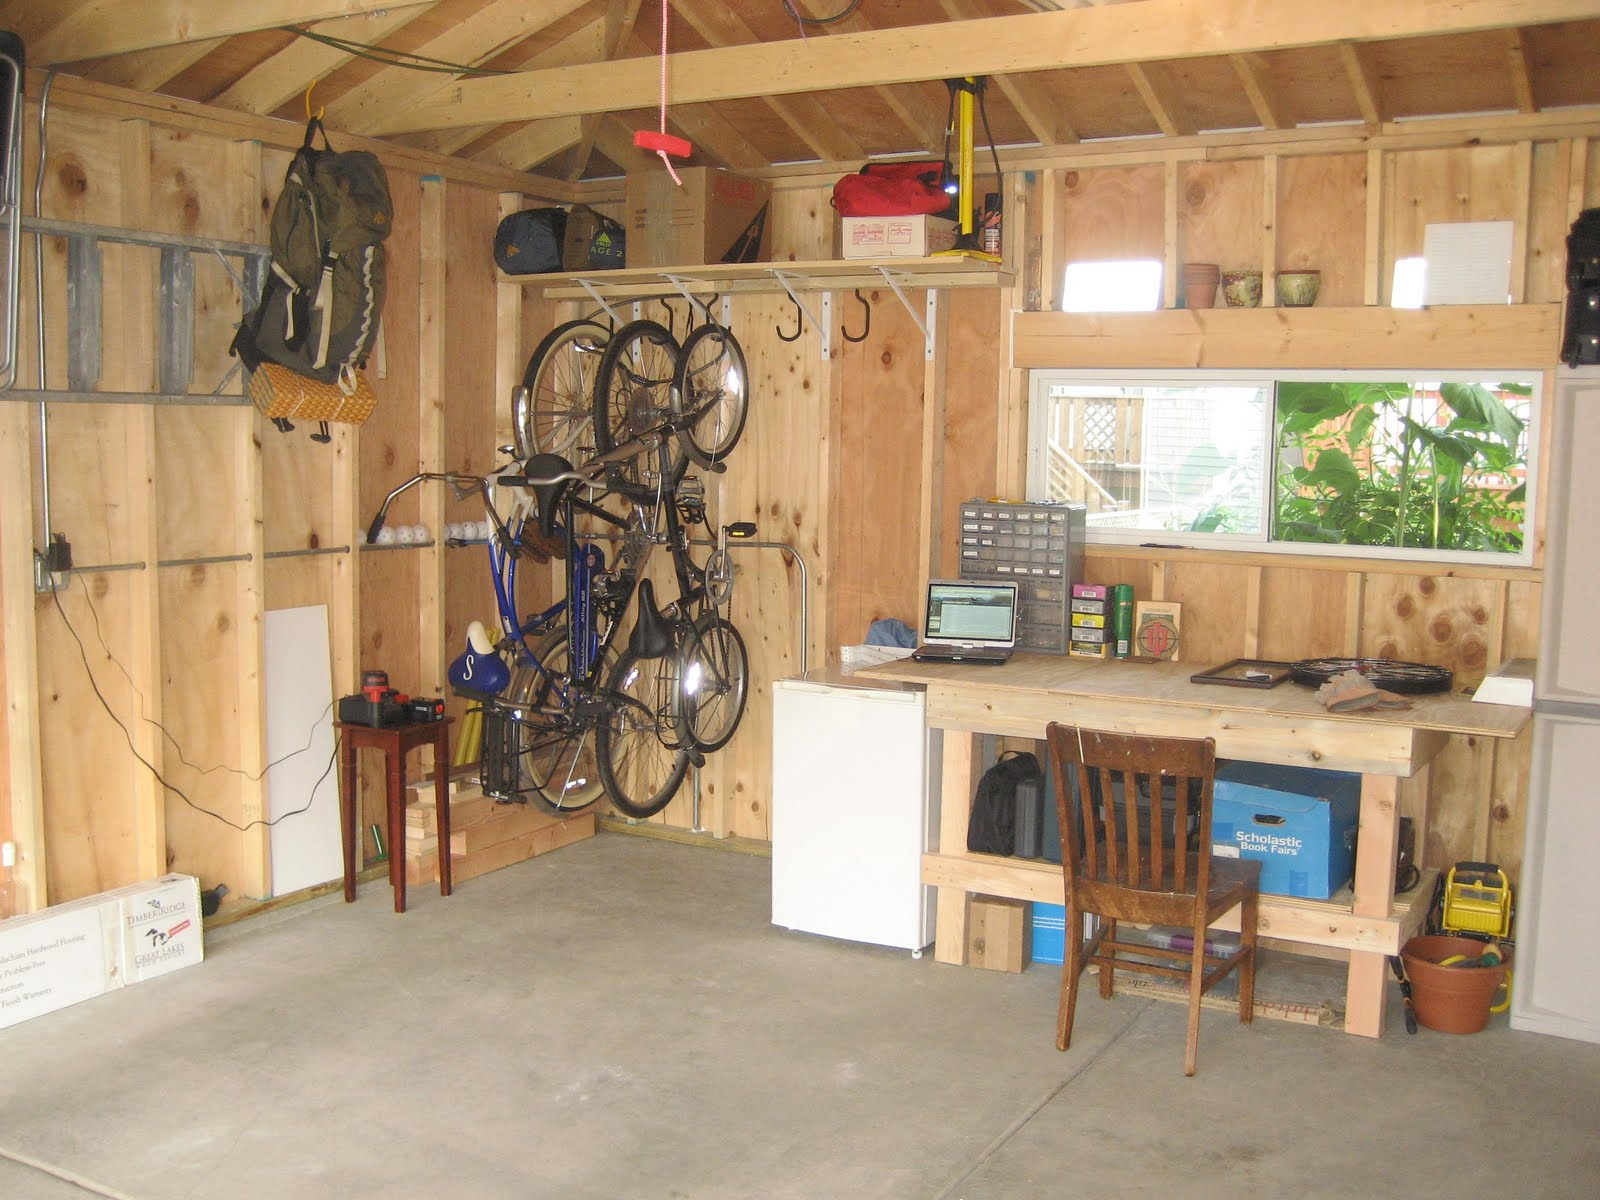 garage kits menards cost to build car detached design ideas how building workbench the better garages per square foot 20x20 kit fu